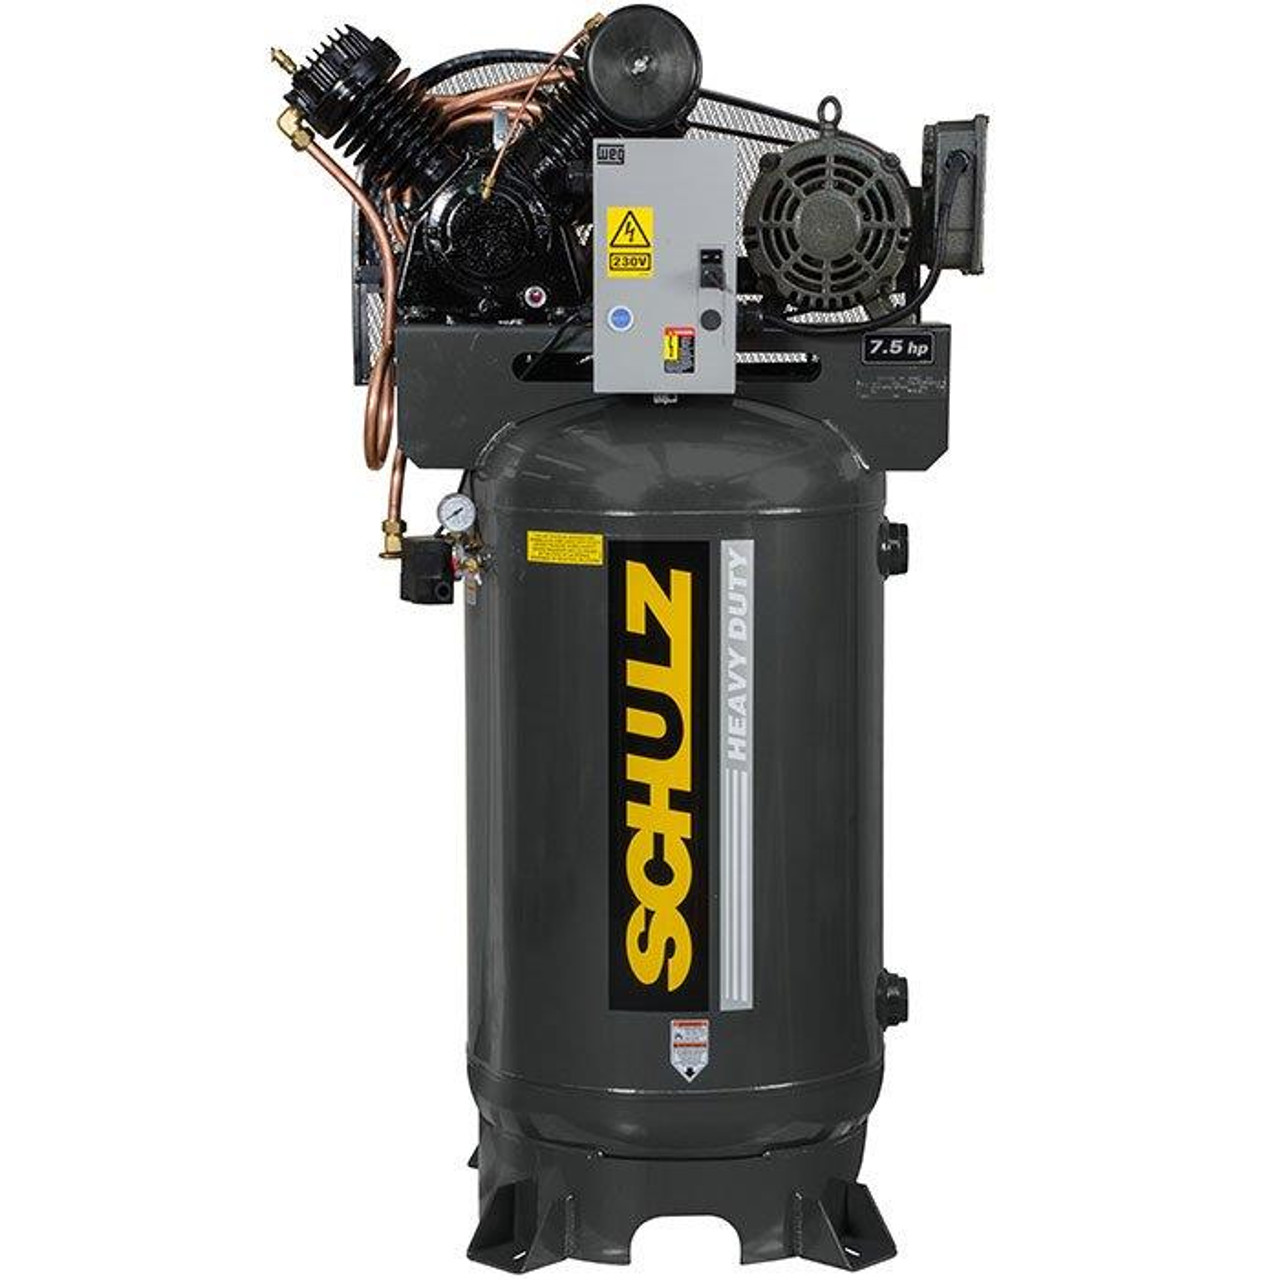 Schulz 7580VV30X-1 7.5 HP 230 Volt Single Phase Two Stage 80 Gallon Vertical Air Compressor